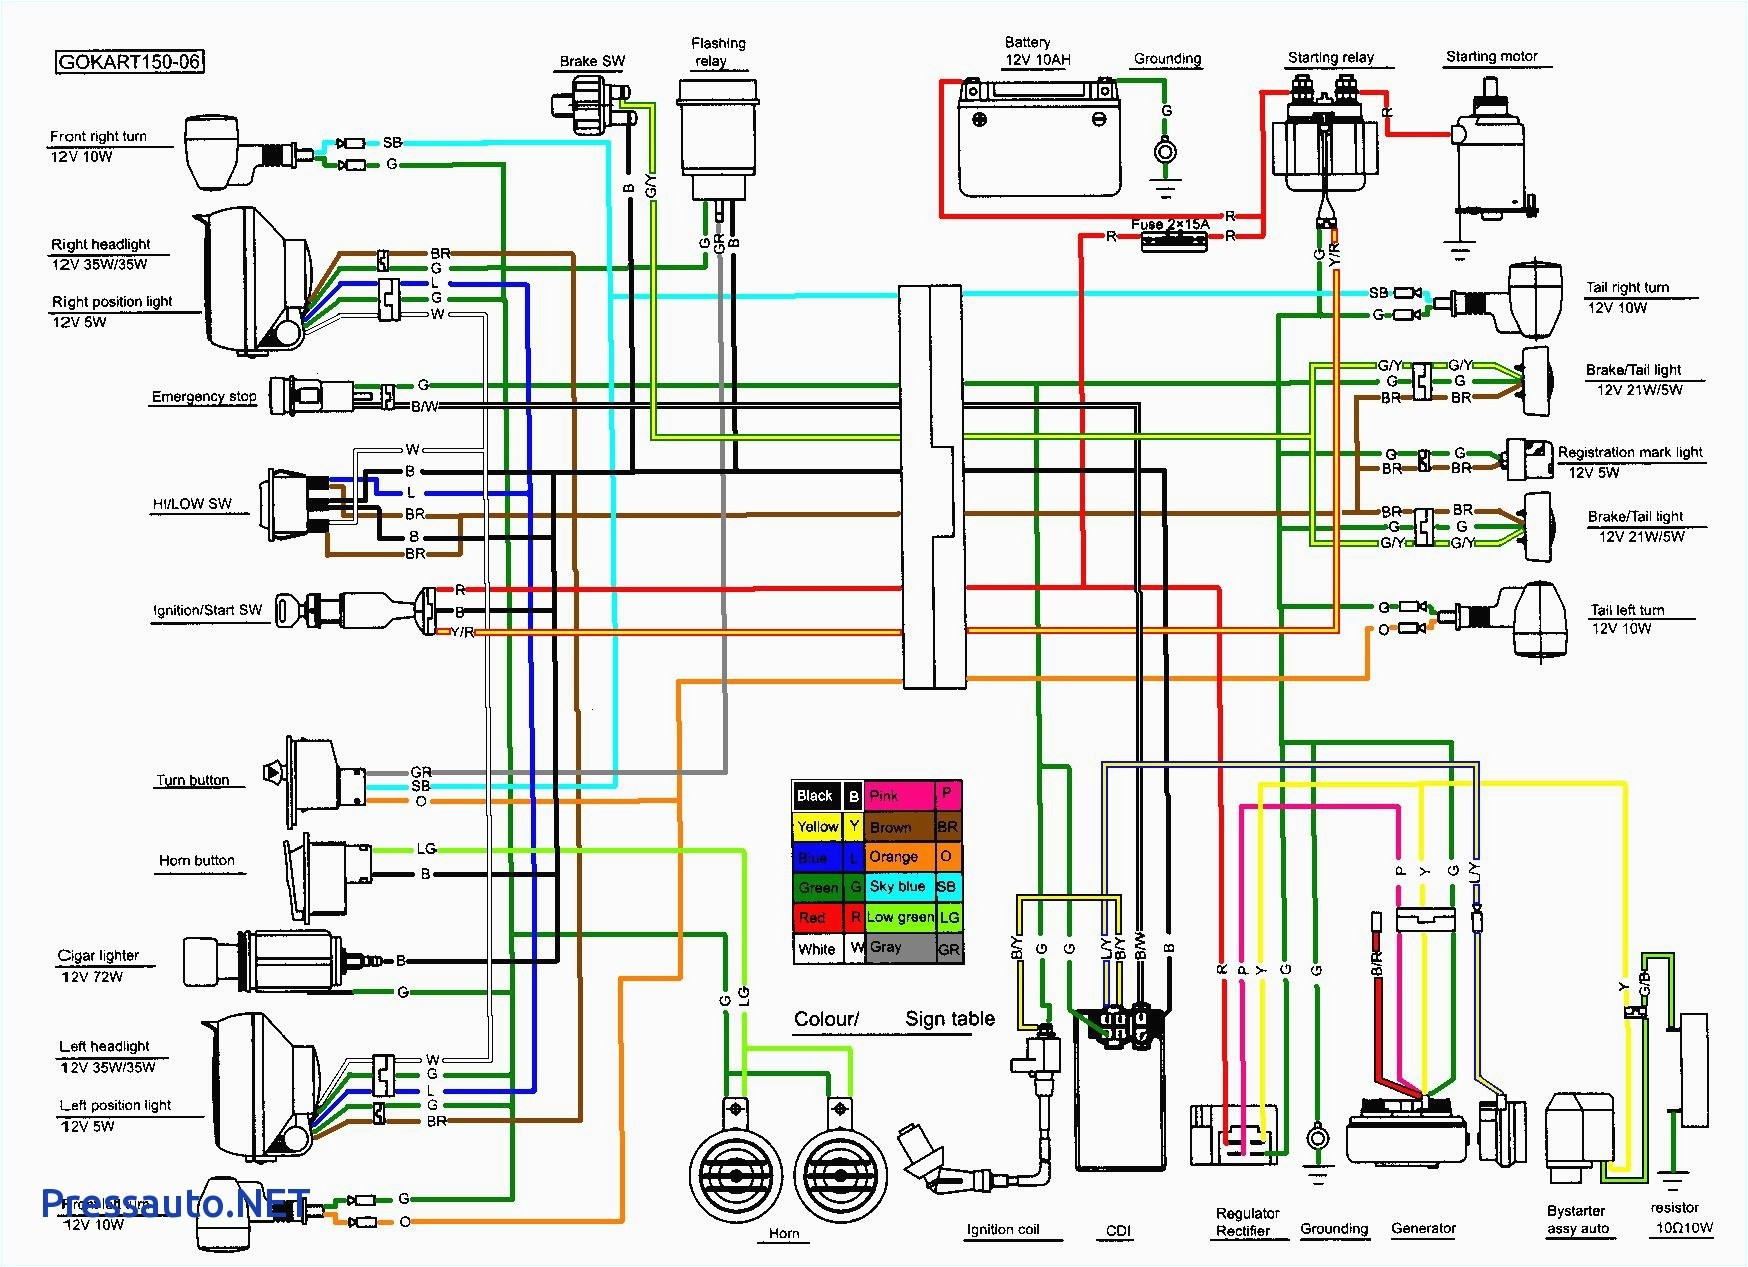 150cc gy6 scooter wire harness diagram wiring diagram sheet gy6 150cc wiring harness diagram gy6 wiring harness diagram